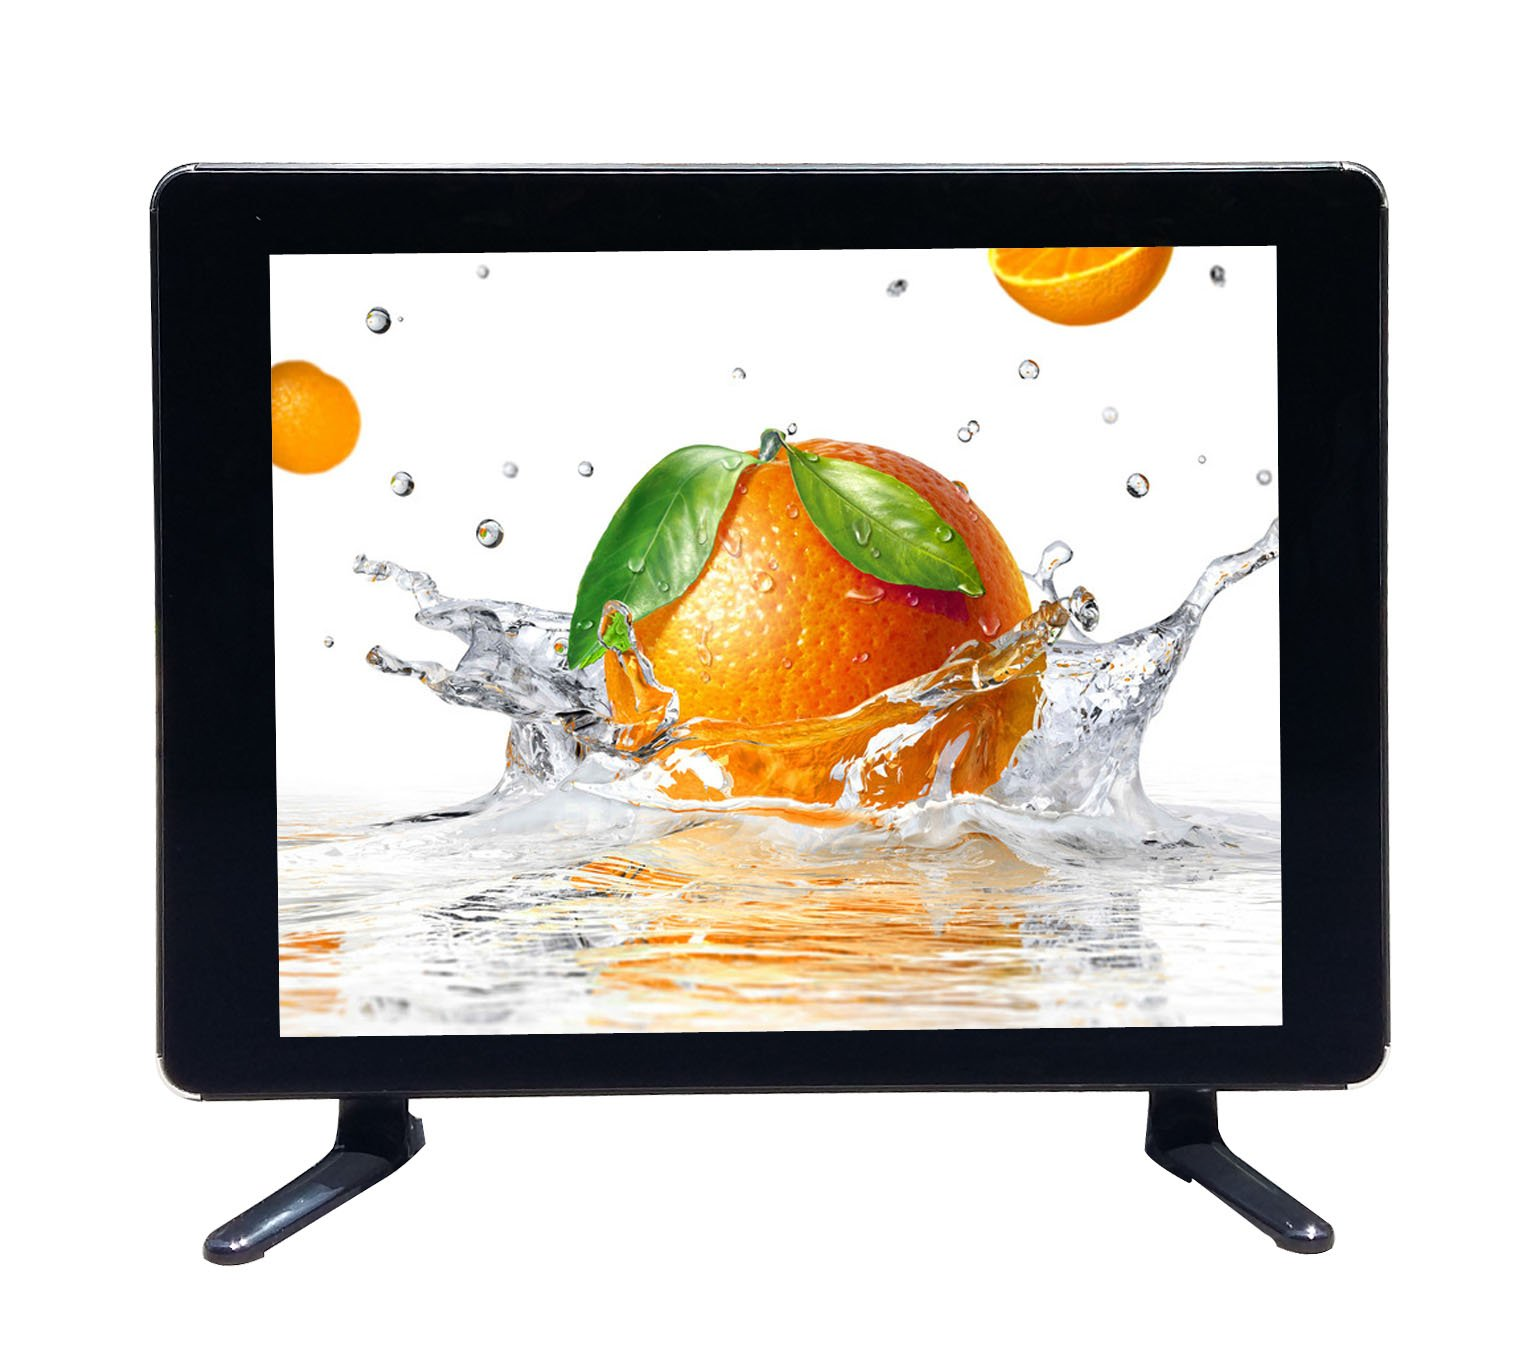 Xinyao LCD 17 inch tv for sale new style for lcd screen-4